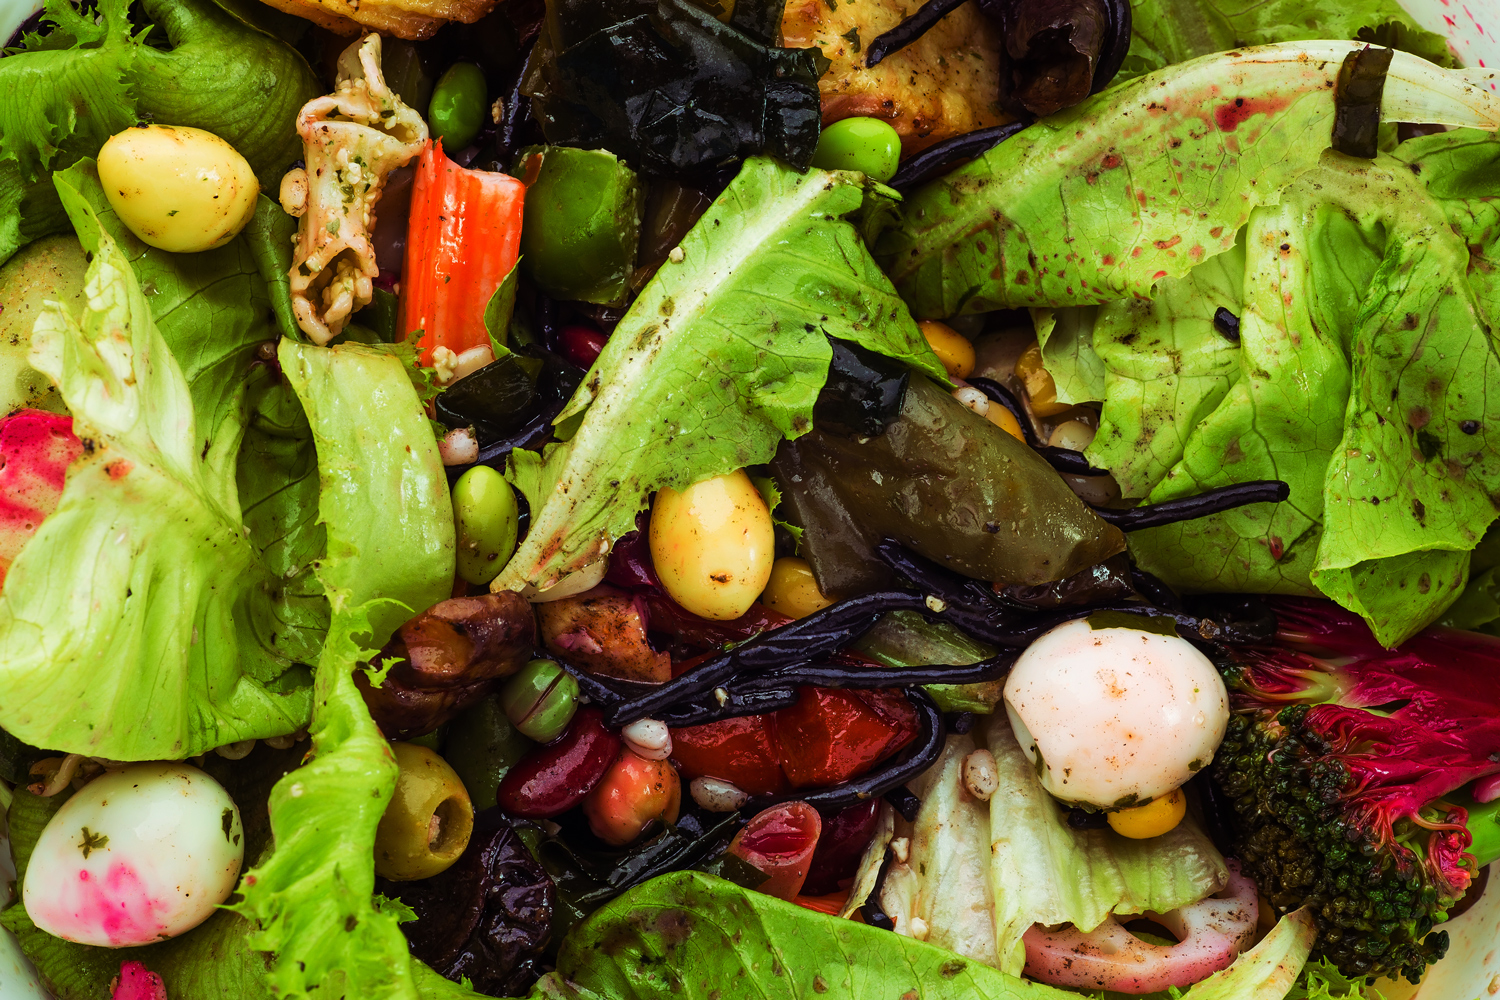 Reducing food loss and waste